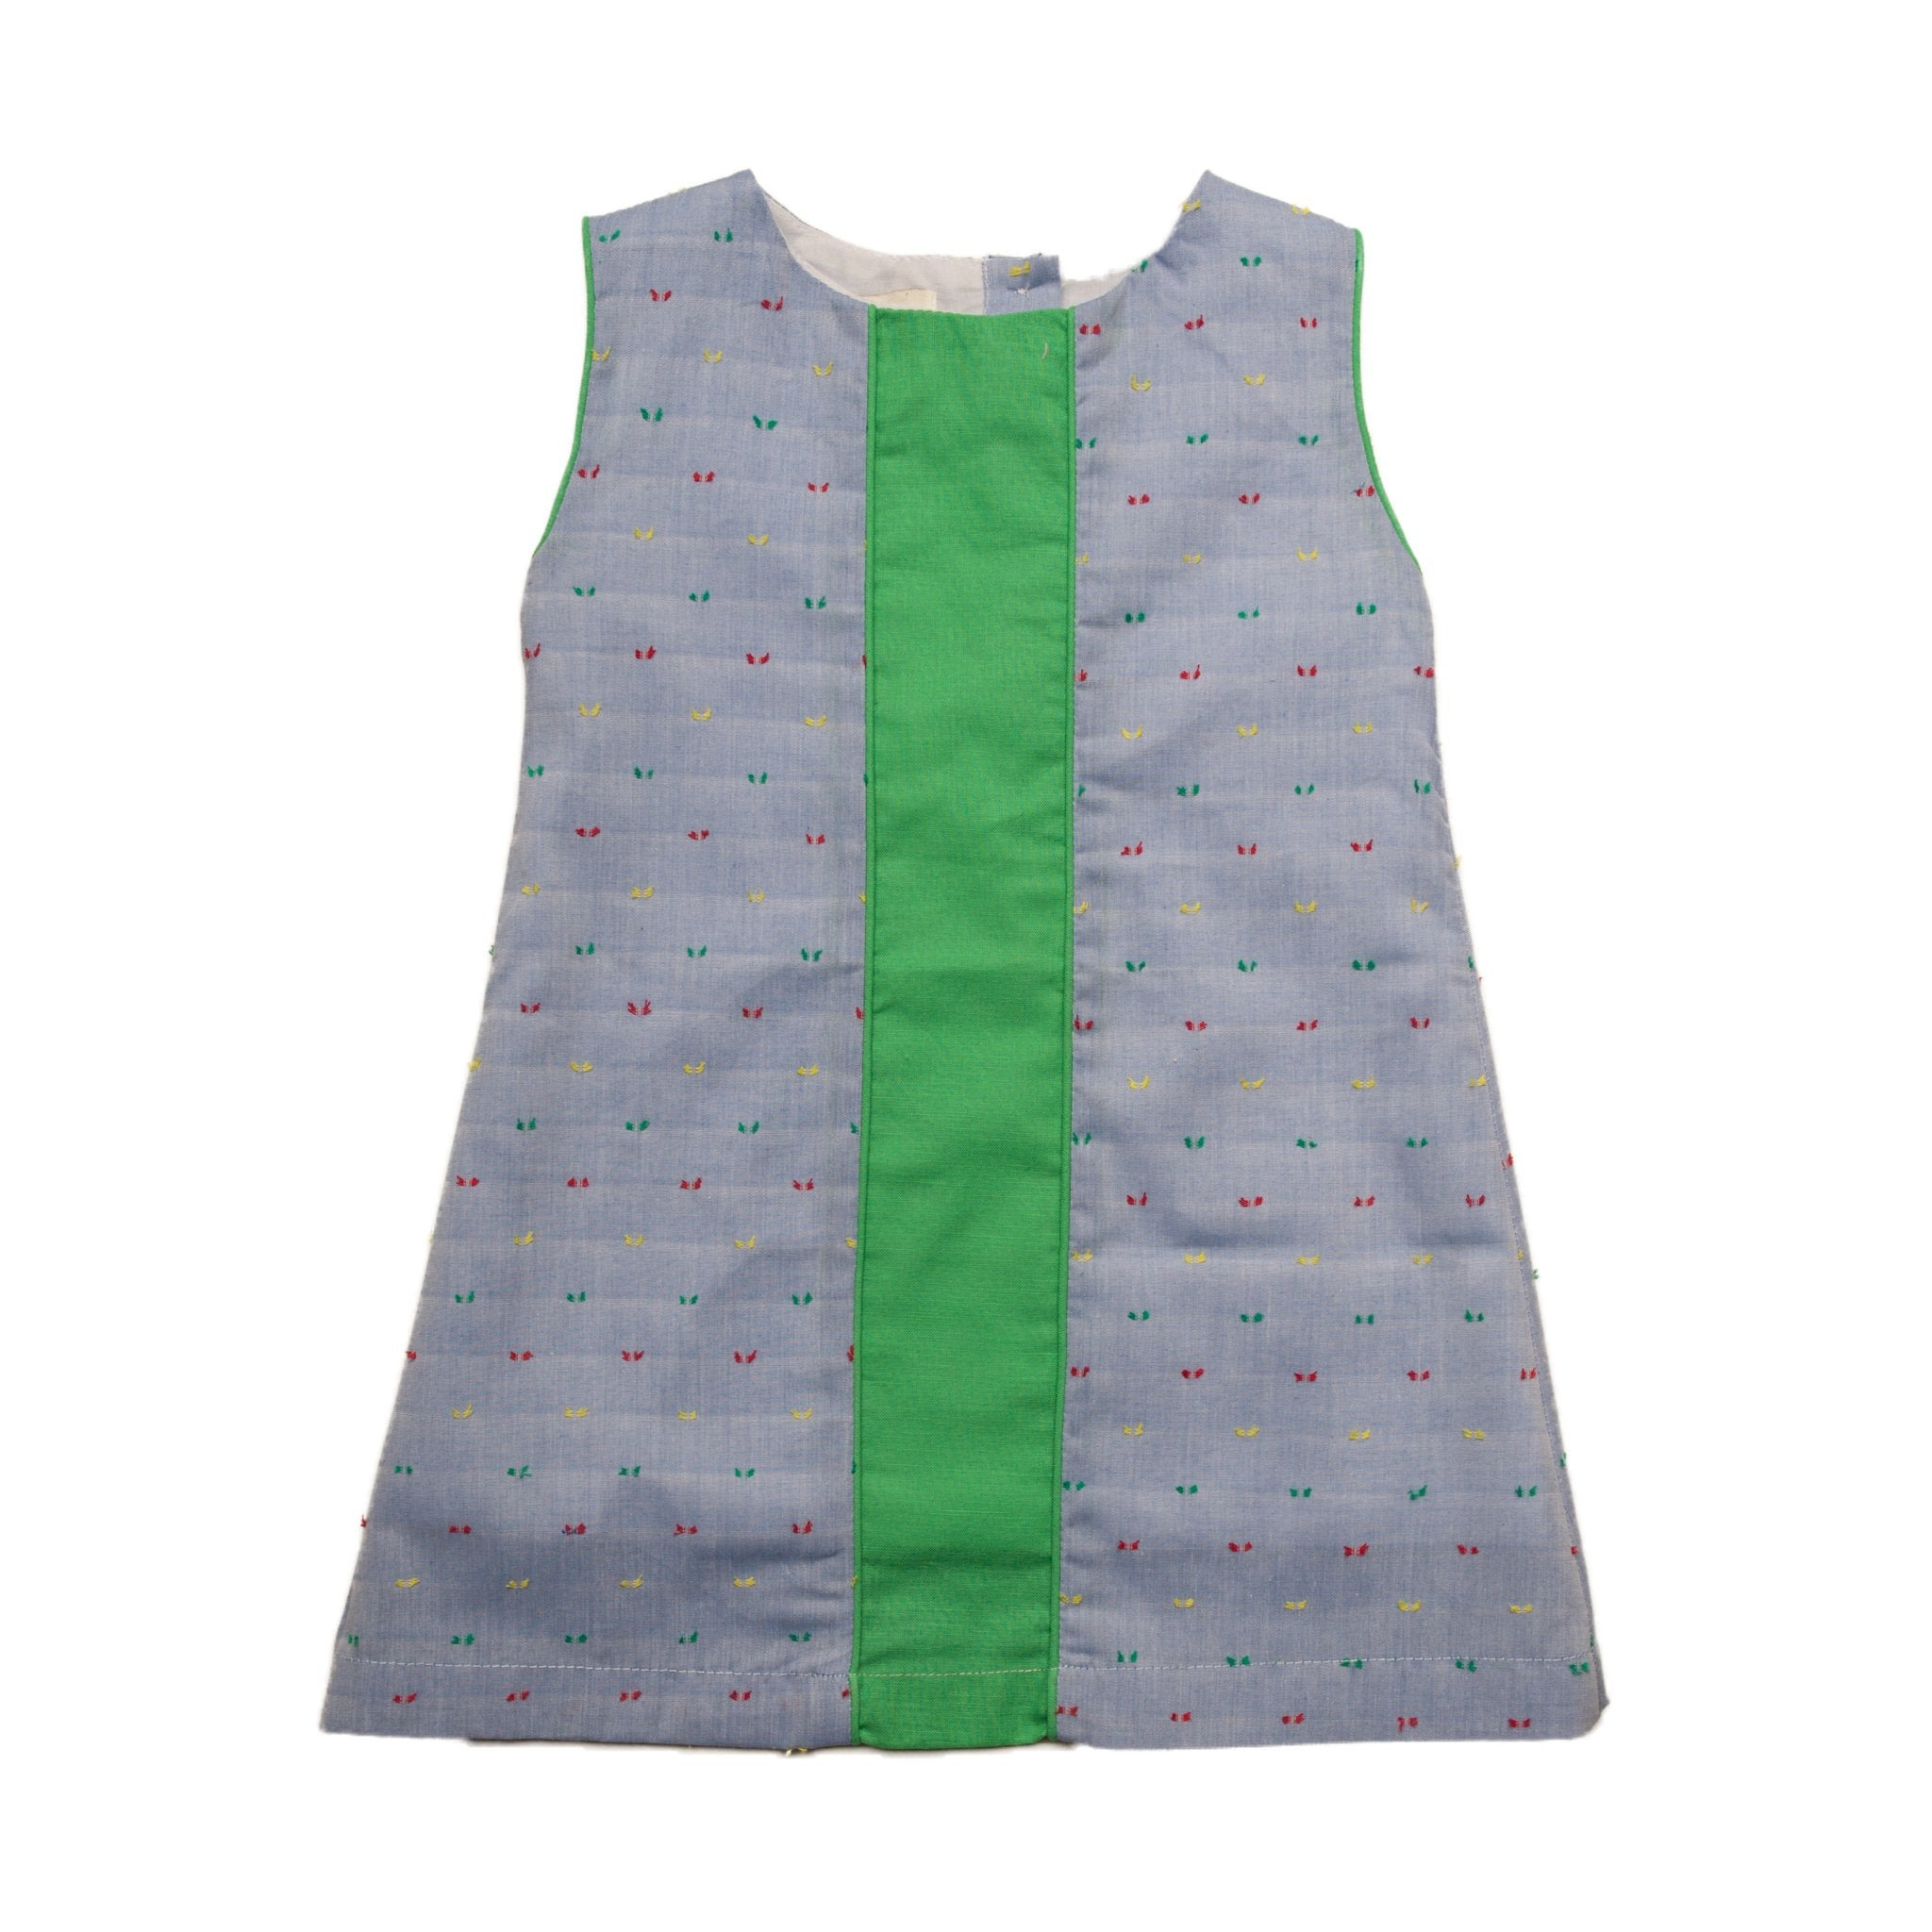 Oaks Apparel Bitty Chambray Swiss Dot with Green Dress - Noa & Vivi Kids Apparel